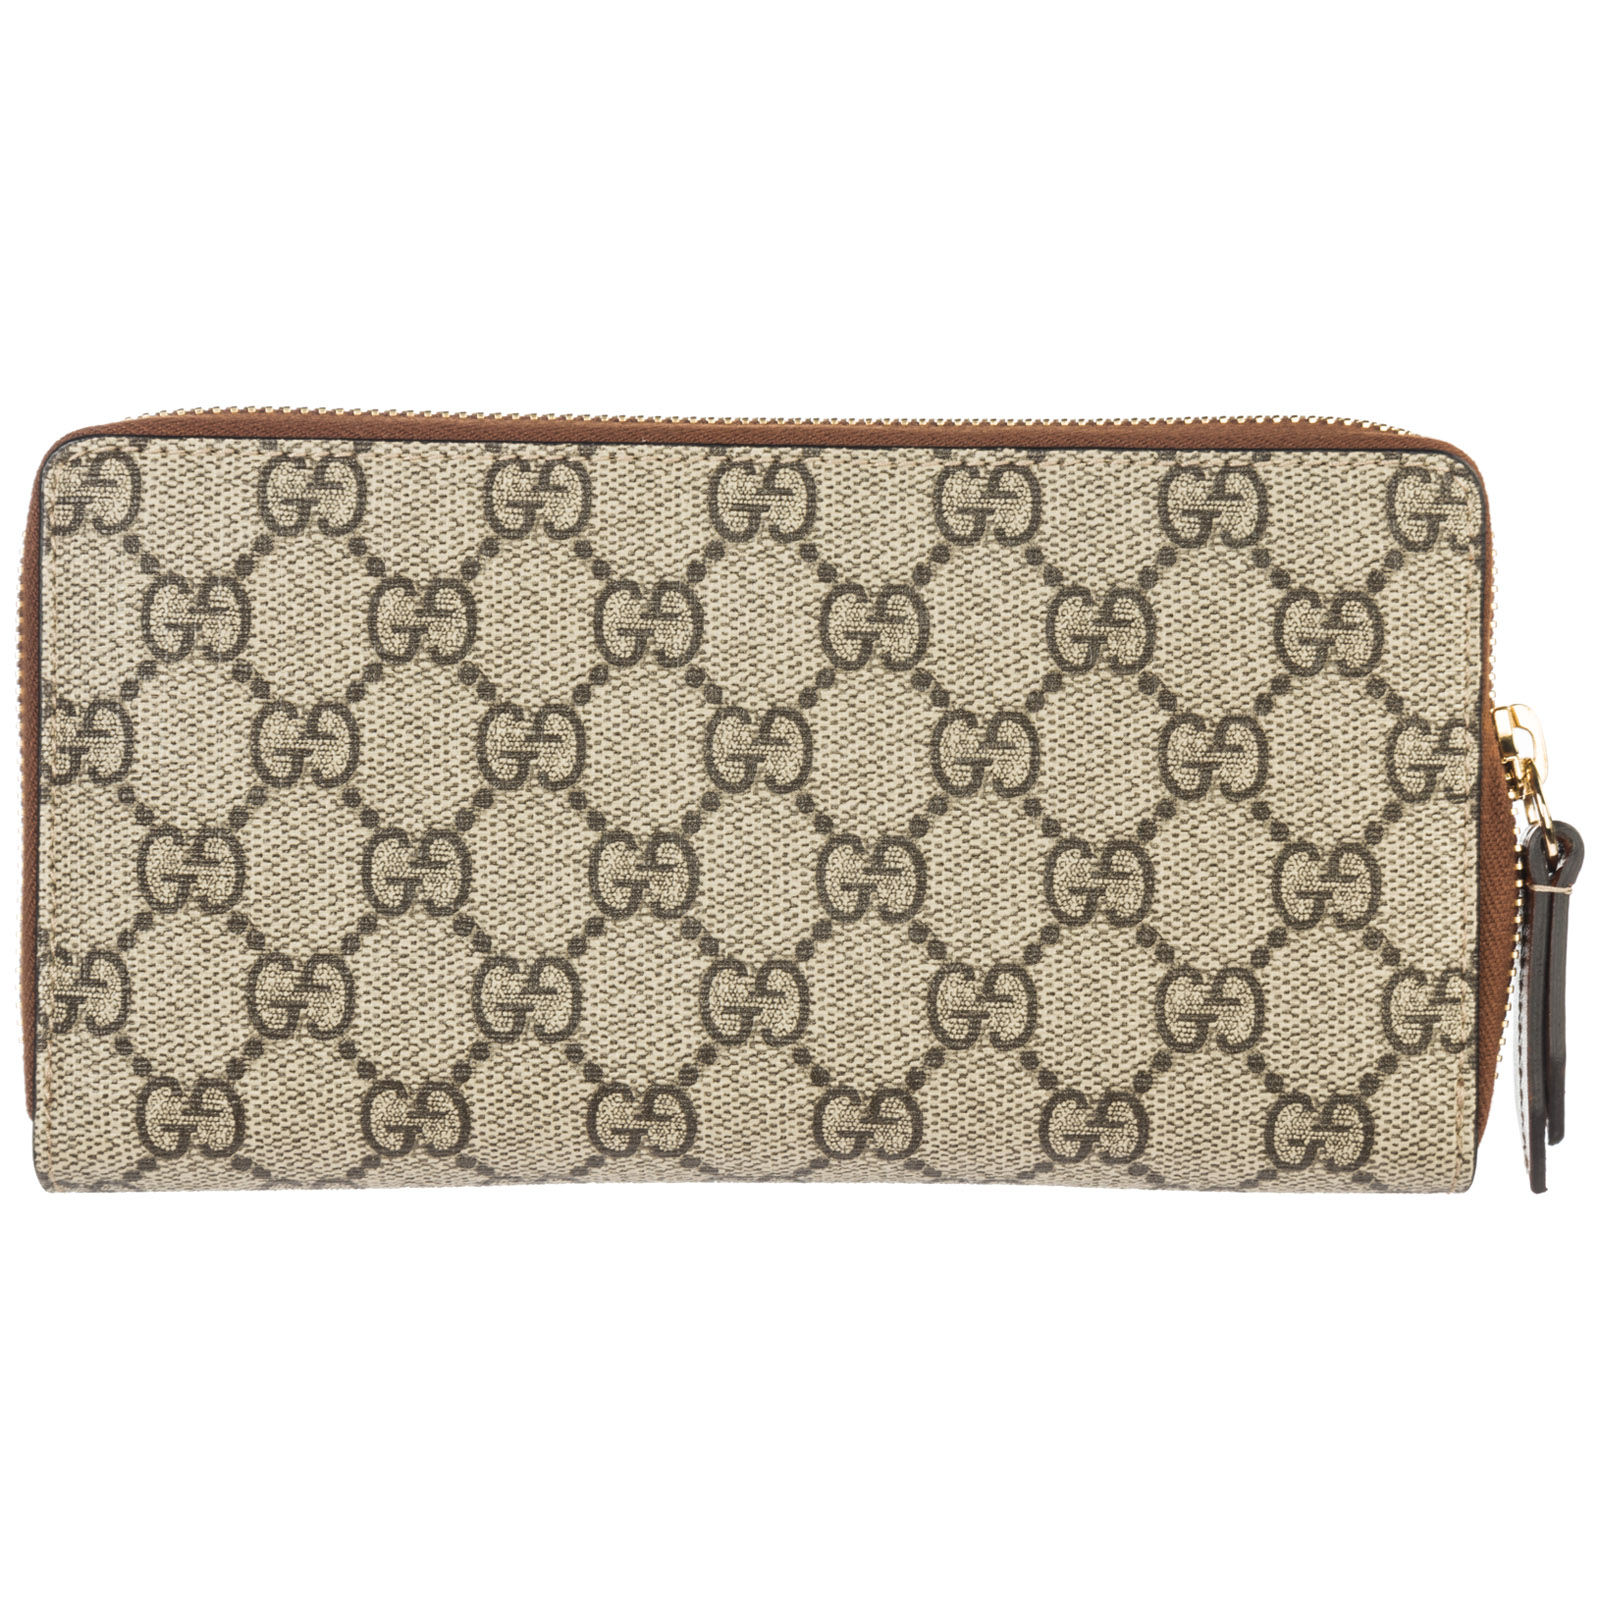 216a0917c76 Gucci Women s wallet genuine leather coin case holder purse card bifold